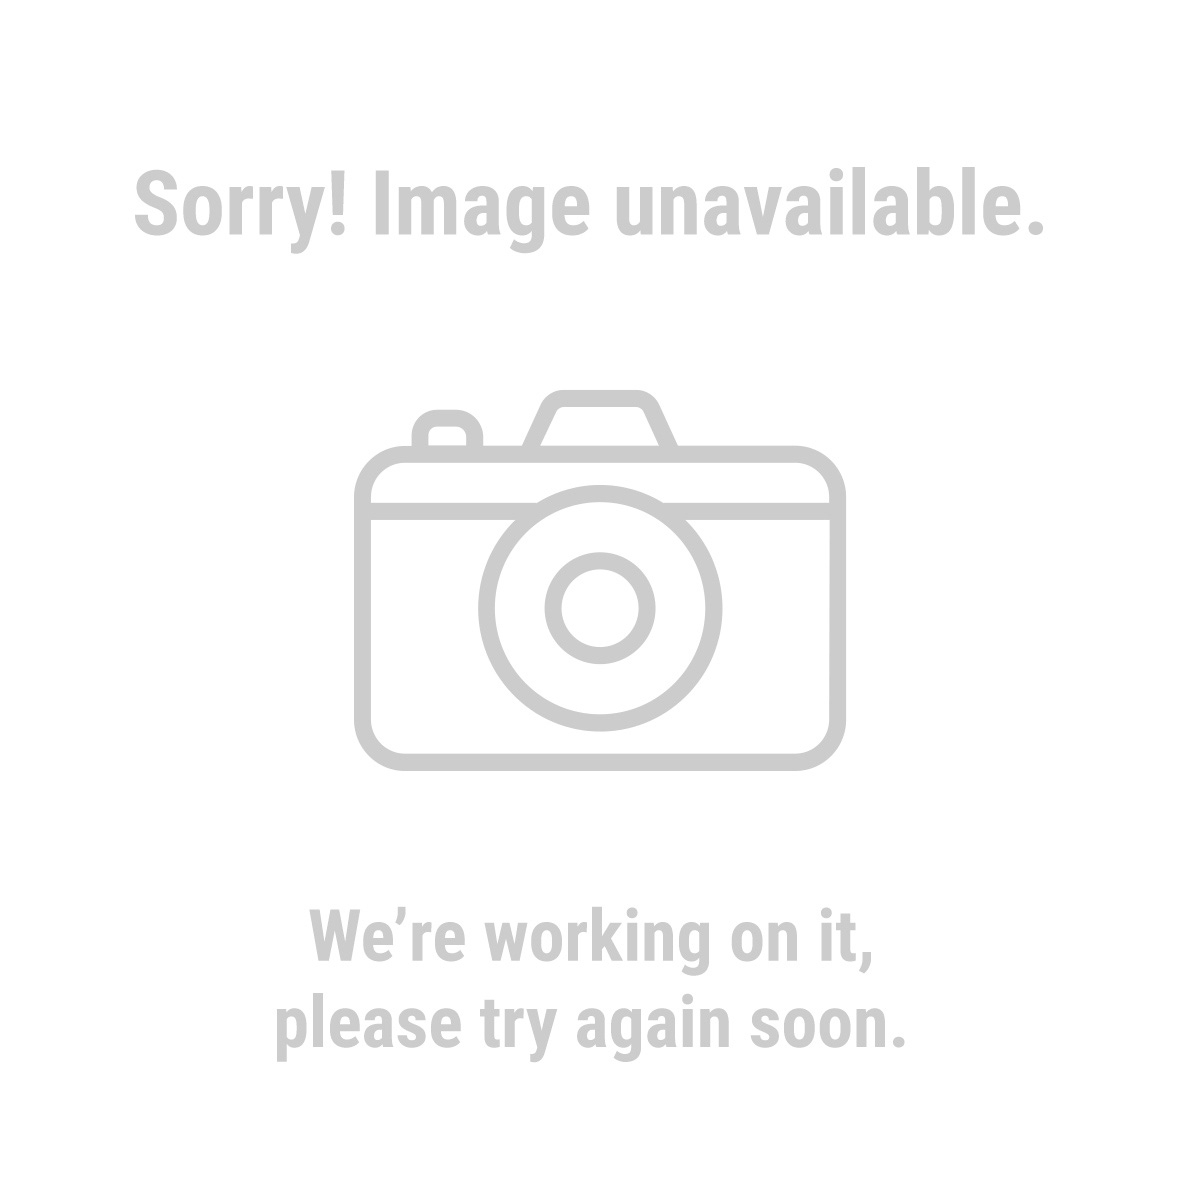 Pittsburgh 37850 6 in. Industrial C-Clamp